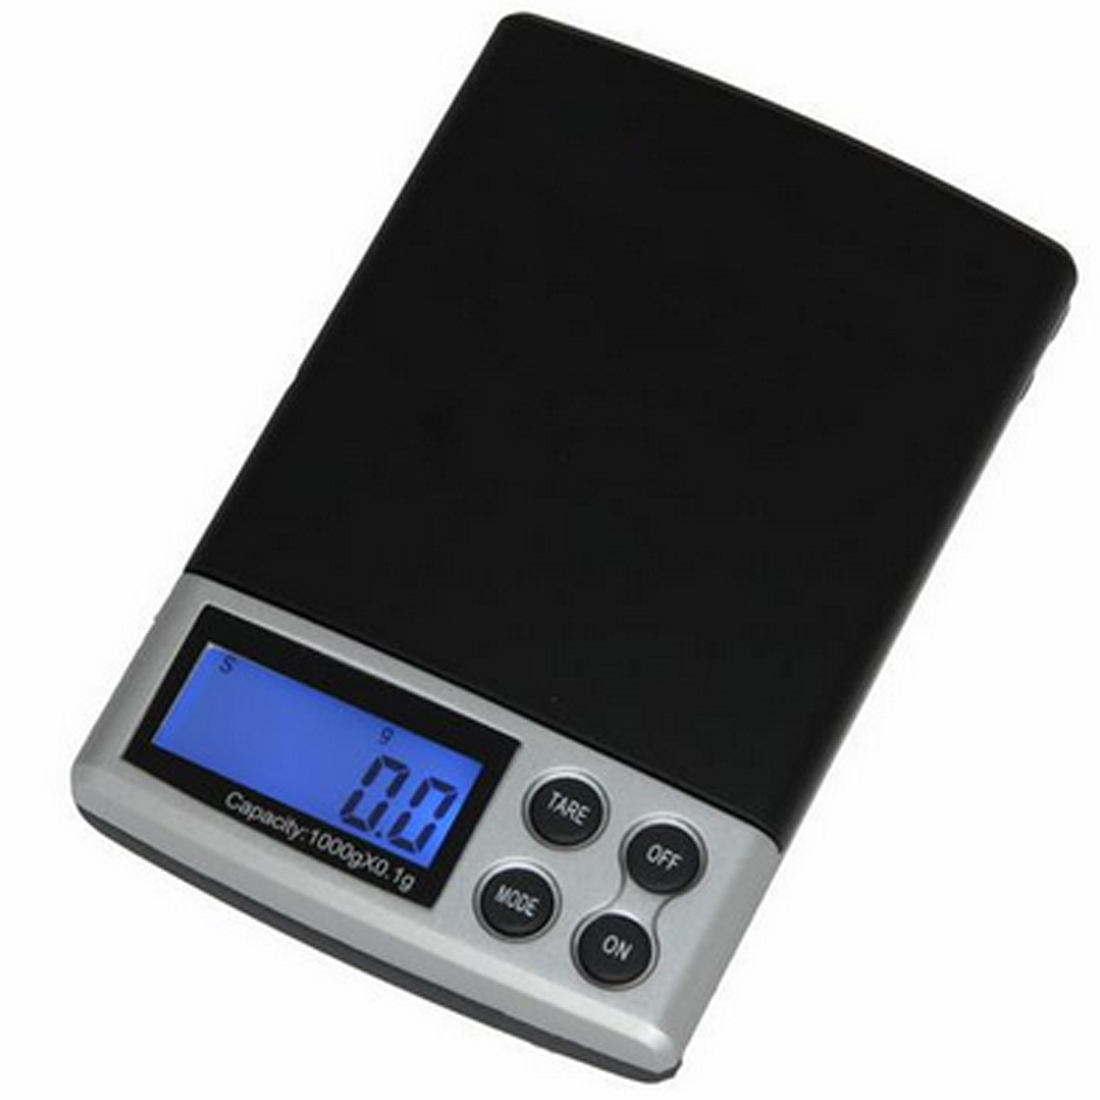 Useful KItchen Tools 500G/0.01g LCD Display Electronic Digital Jewelry Pocket Scales Balance Portable Weight Weighing Scales